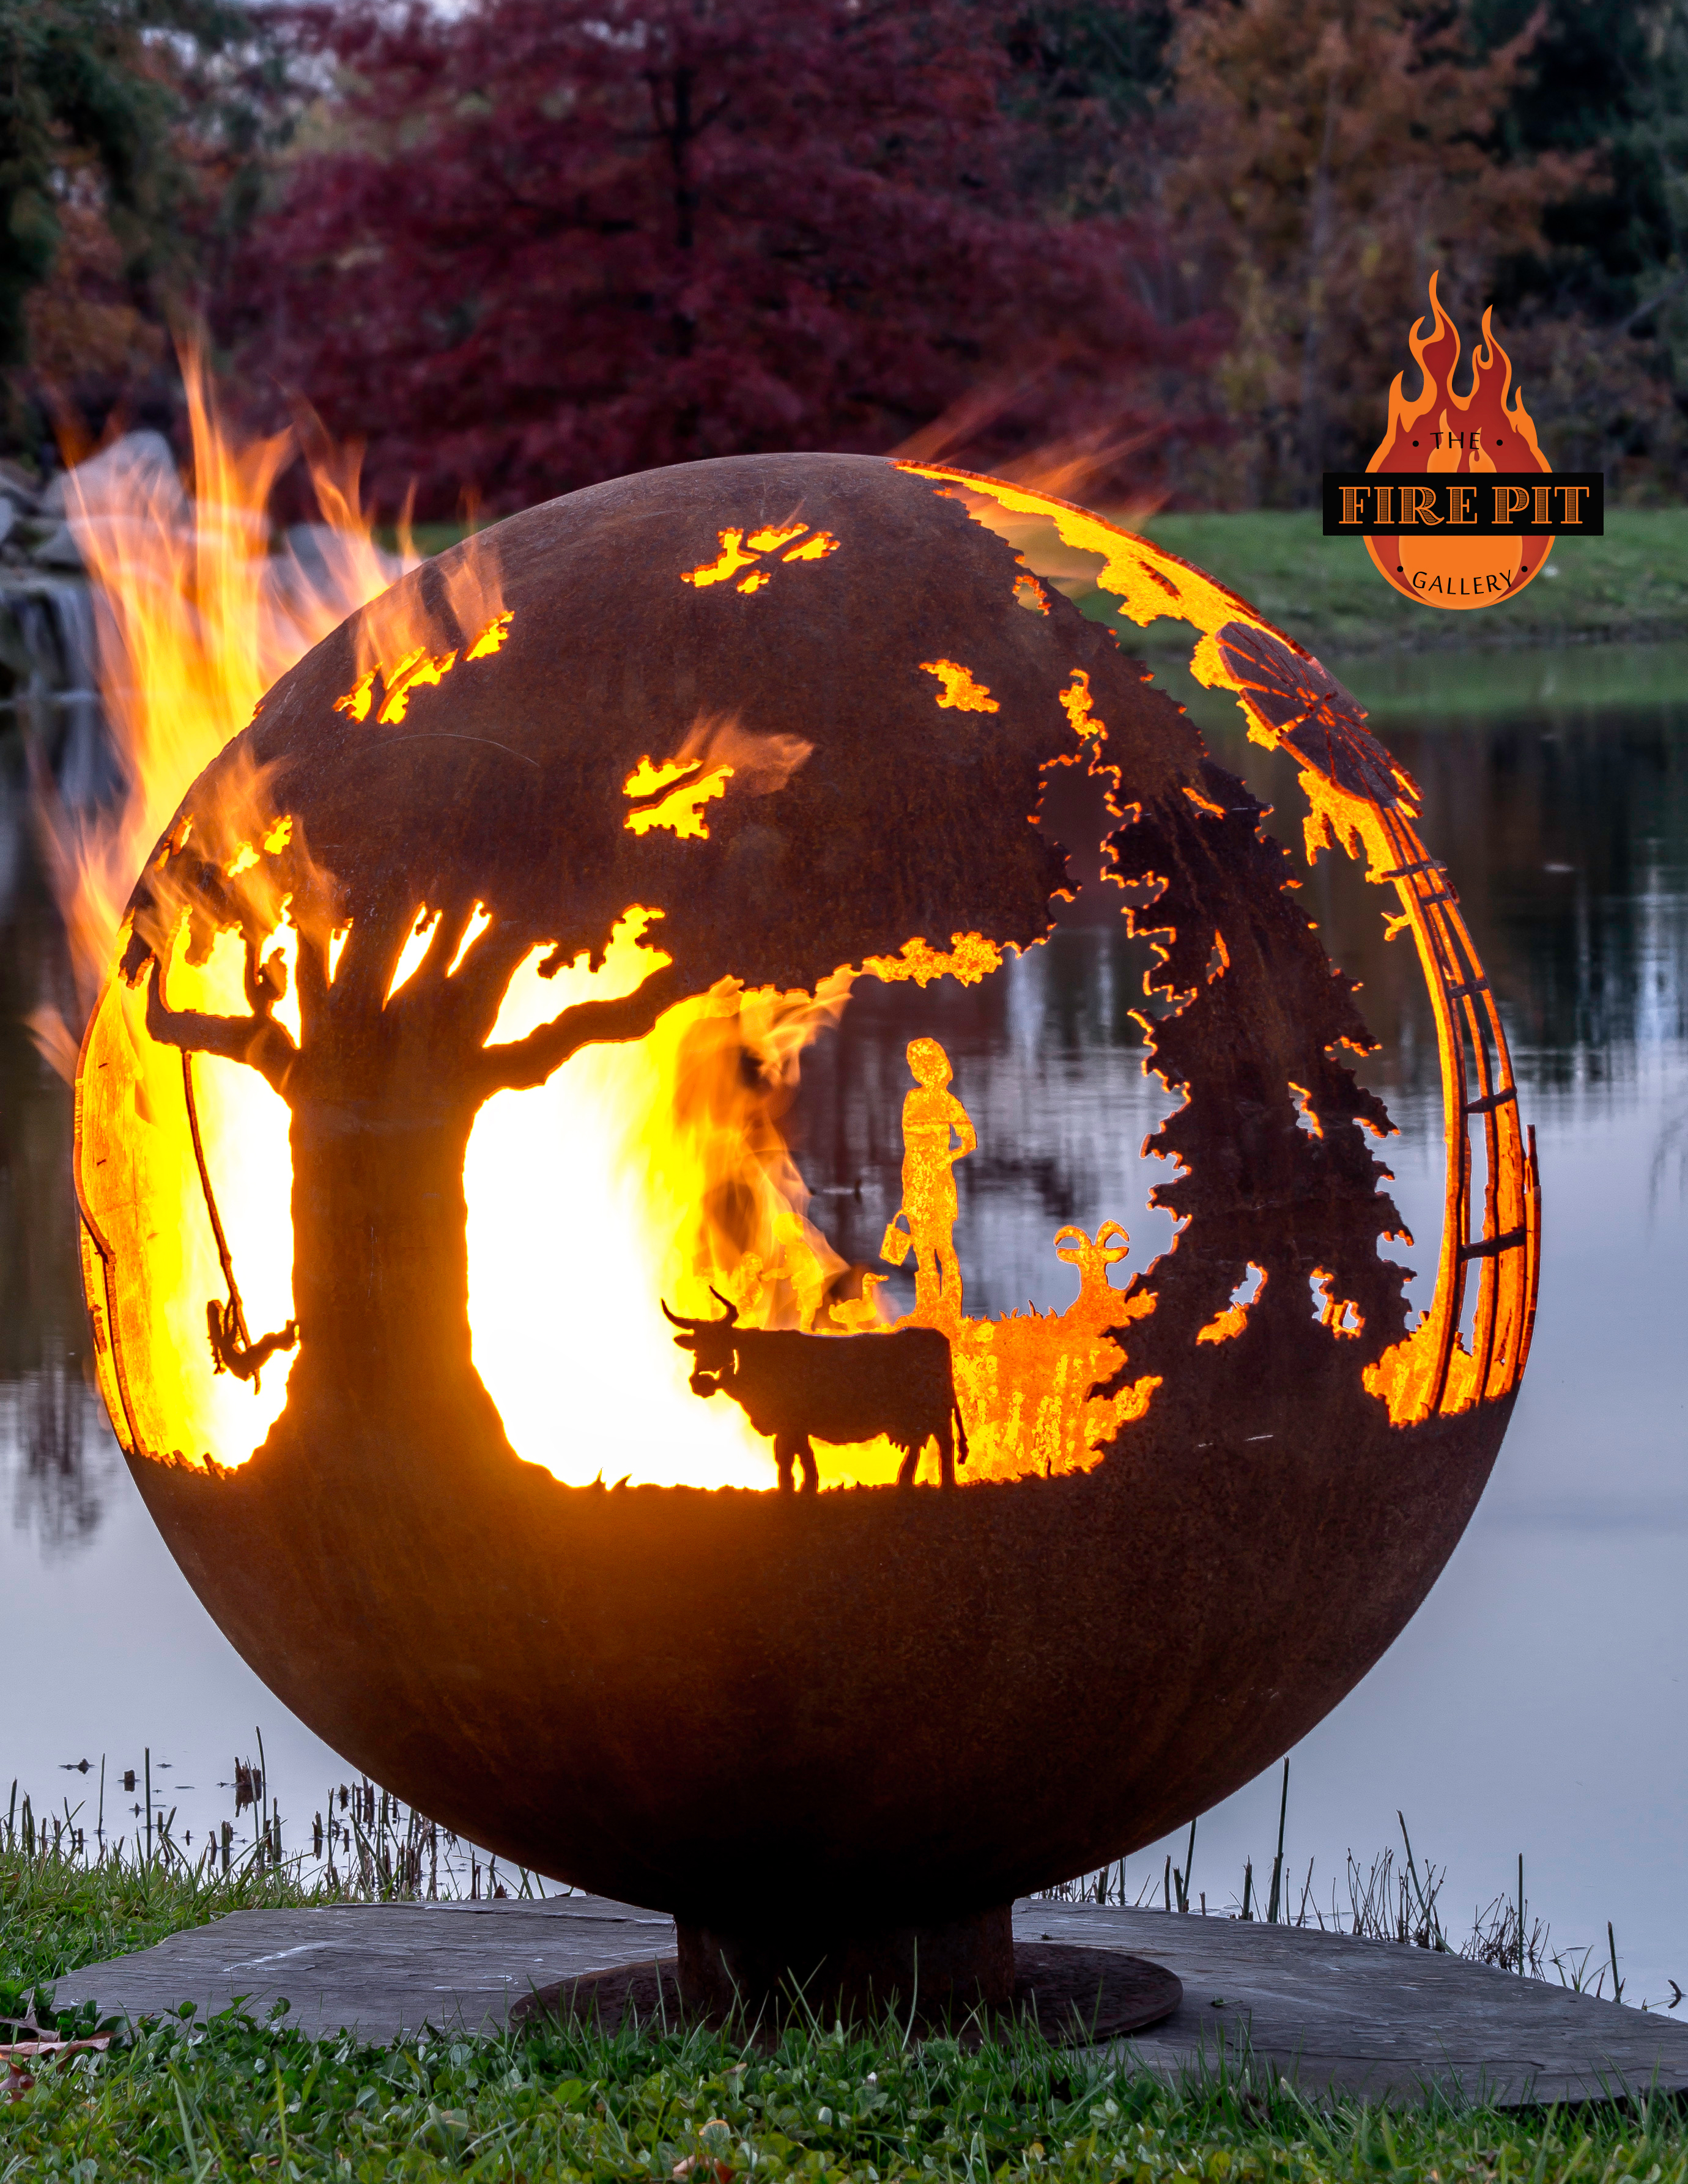 Farm Fire Pit Sphere Appel Crisp Farms The Fire Pit Gallery